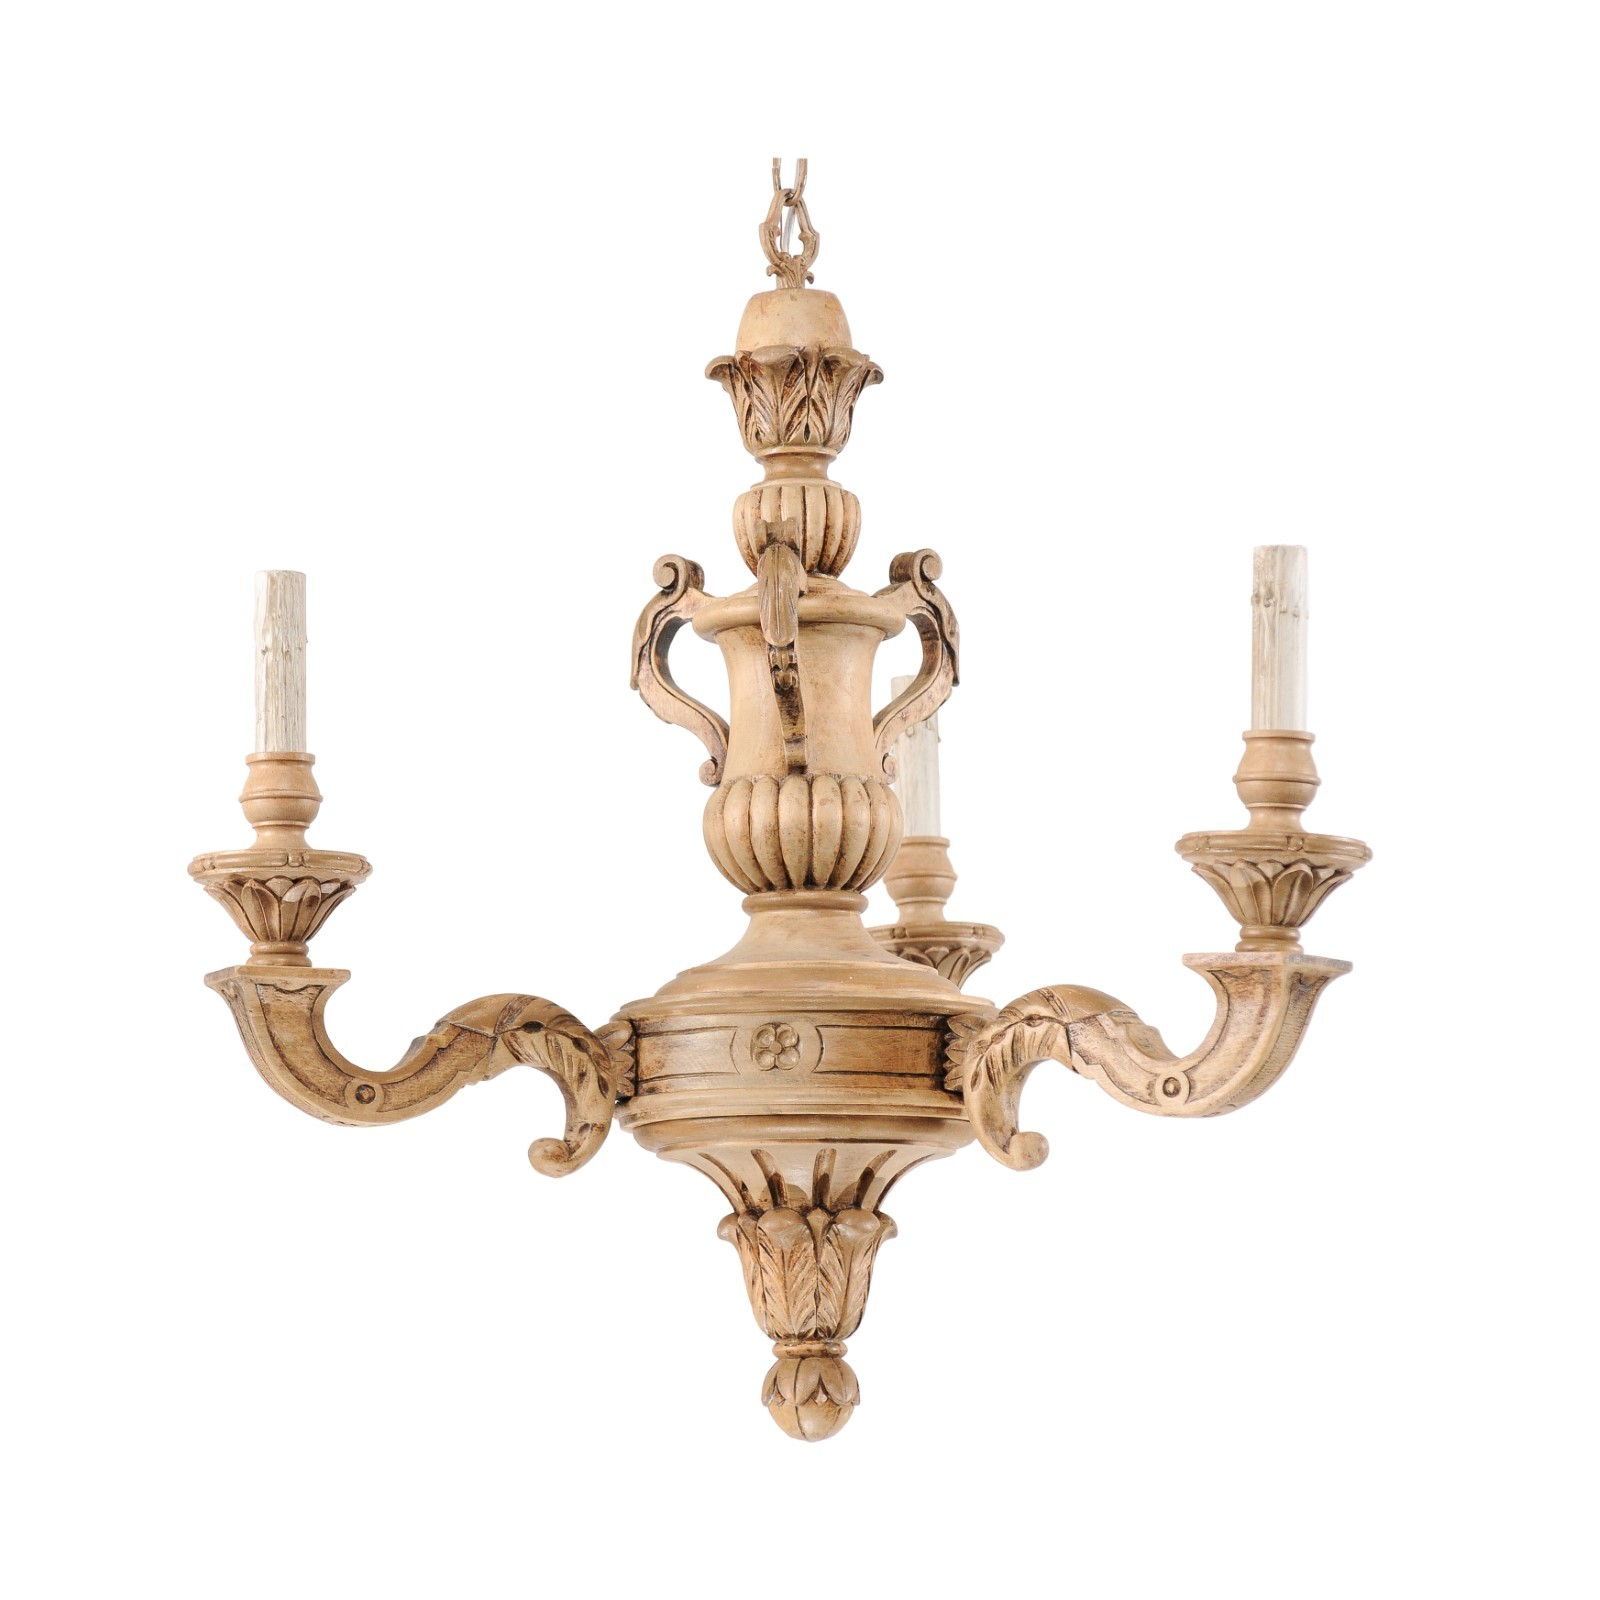 French 3-Light Carved-Wood Chandelier